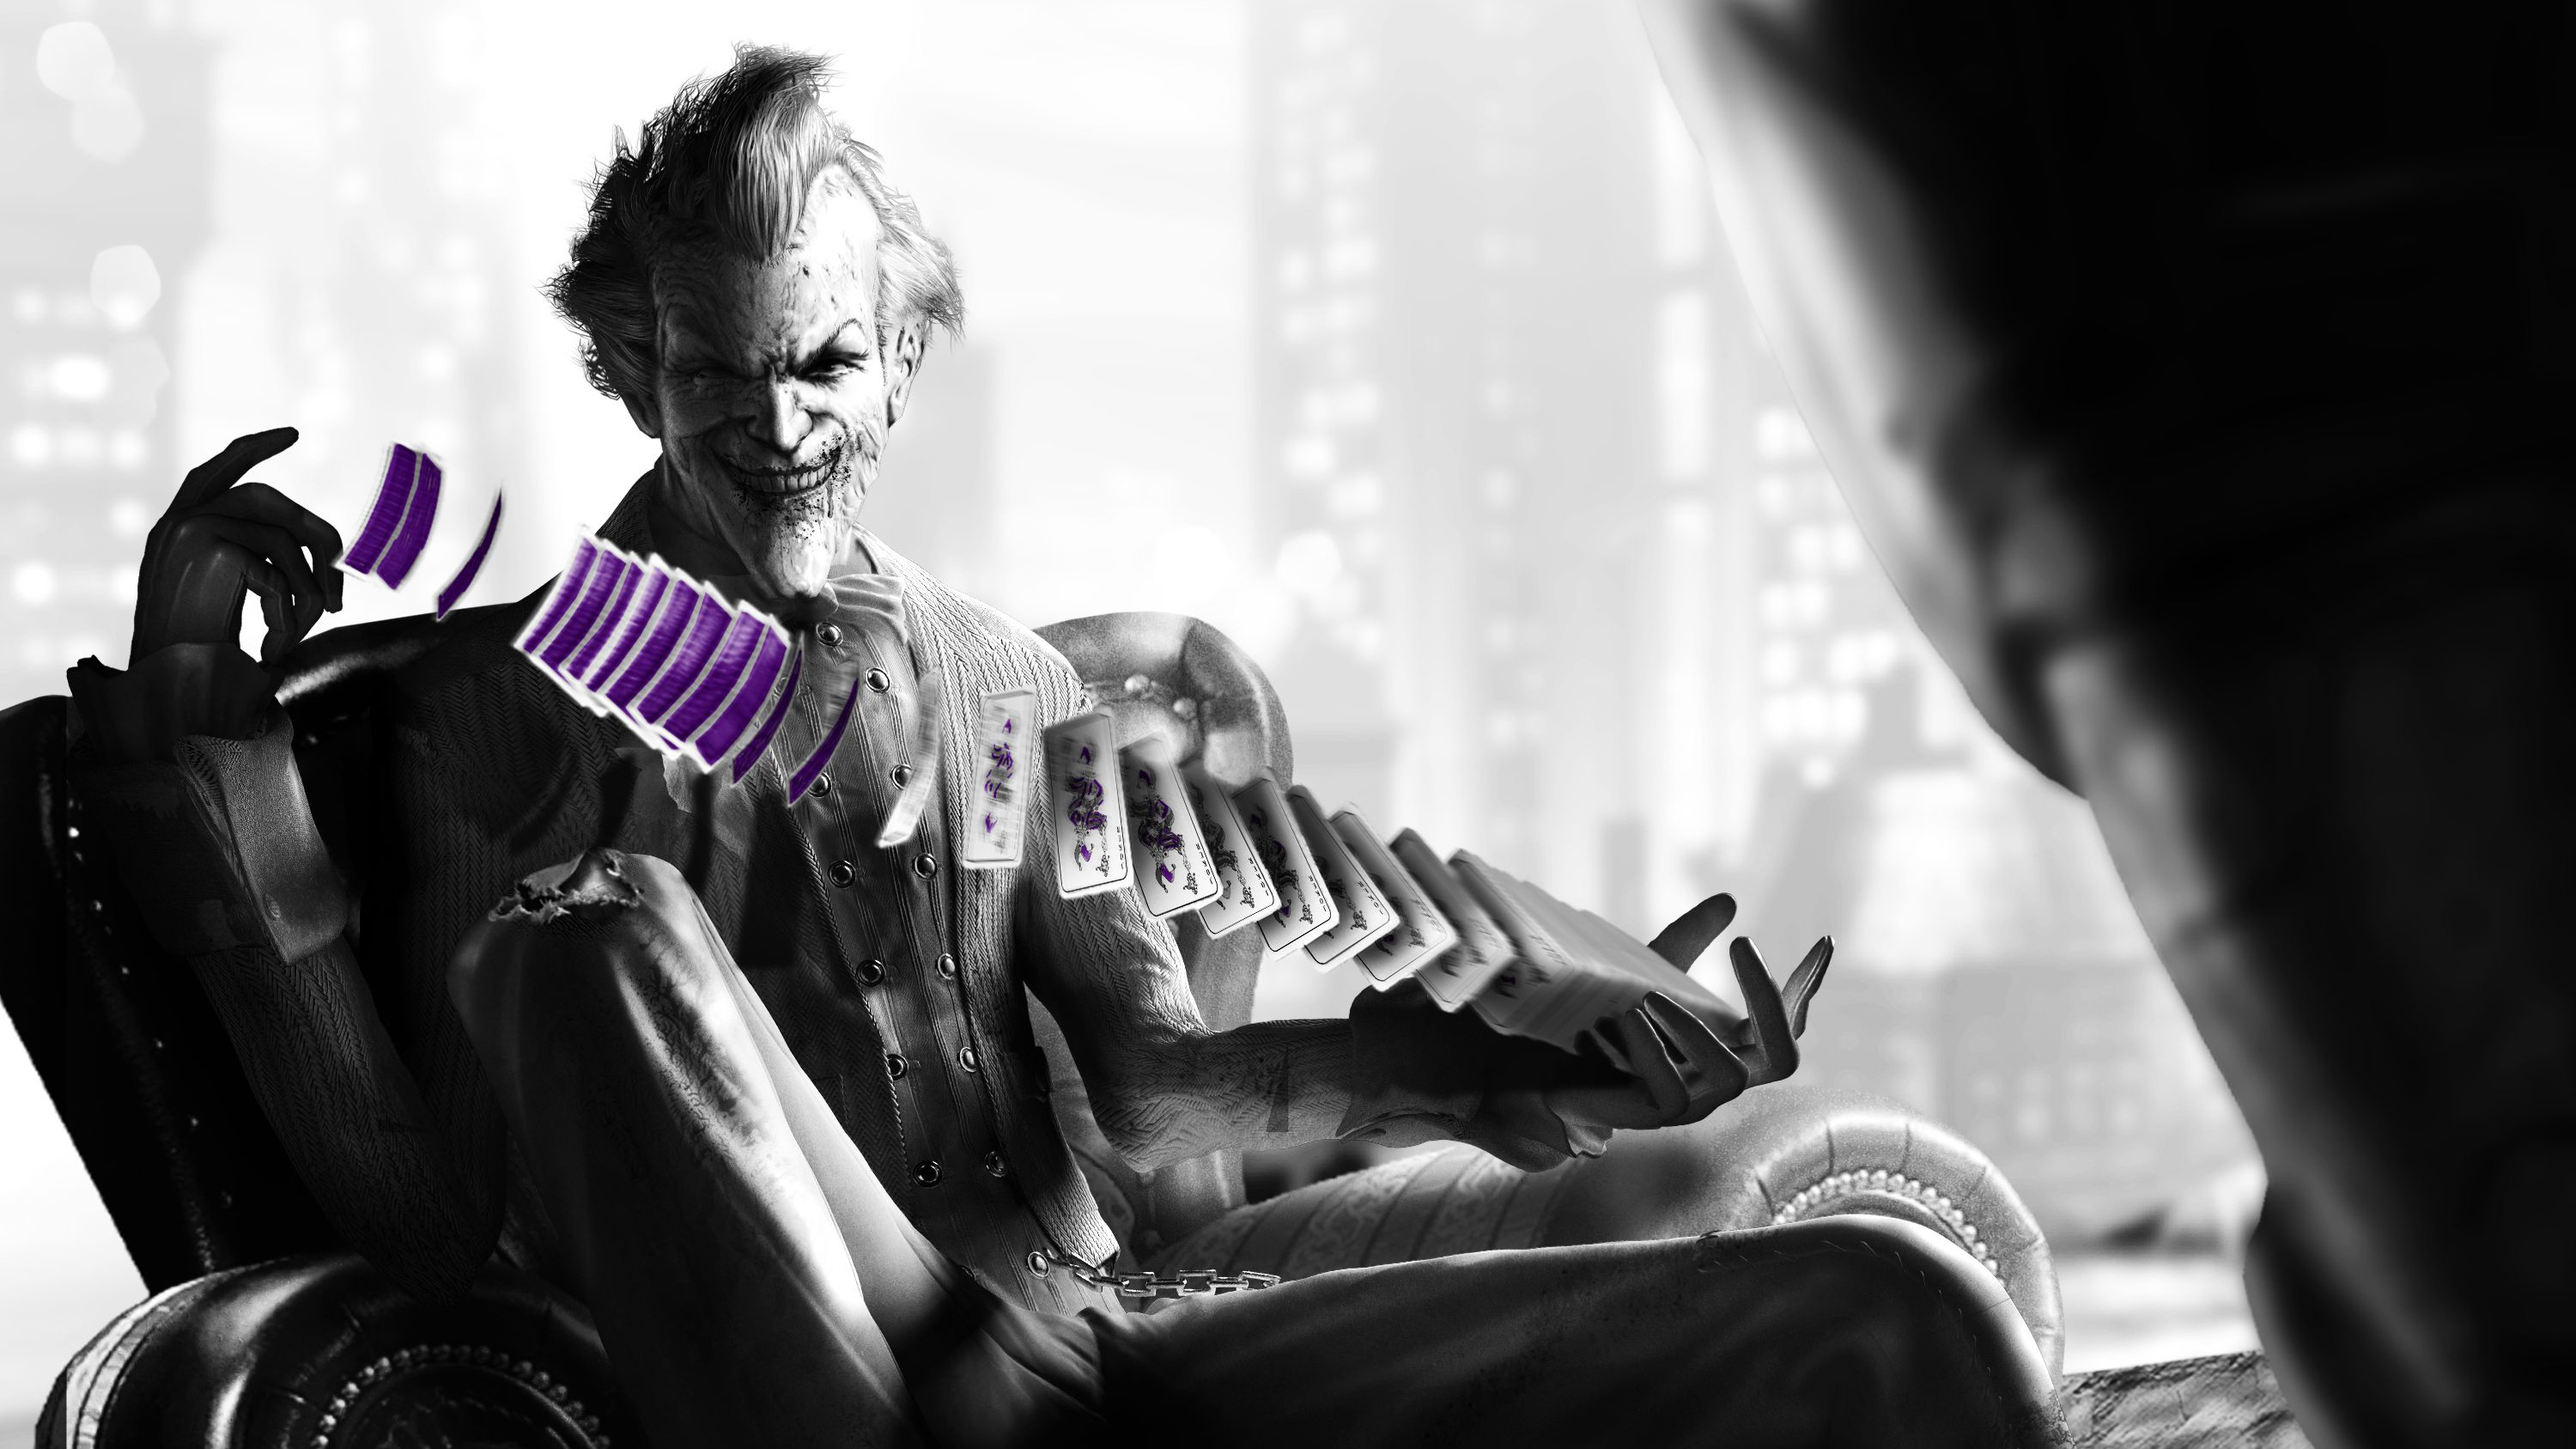 Joker Playing With Cards Monochrome Hd Superheroes 4k Wallpapers Images Backgrounds Photos And Pictures